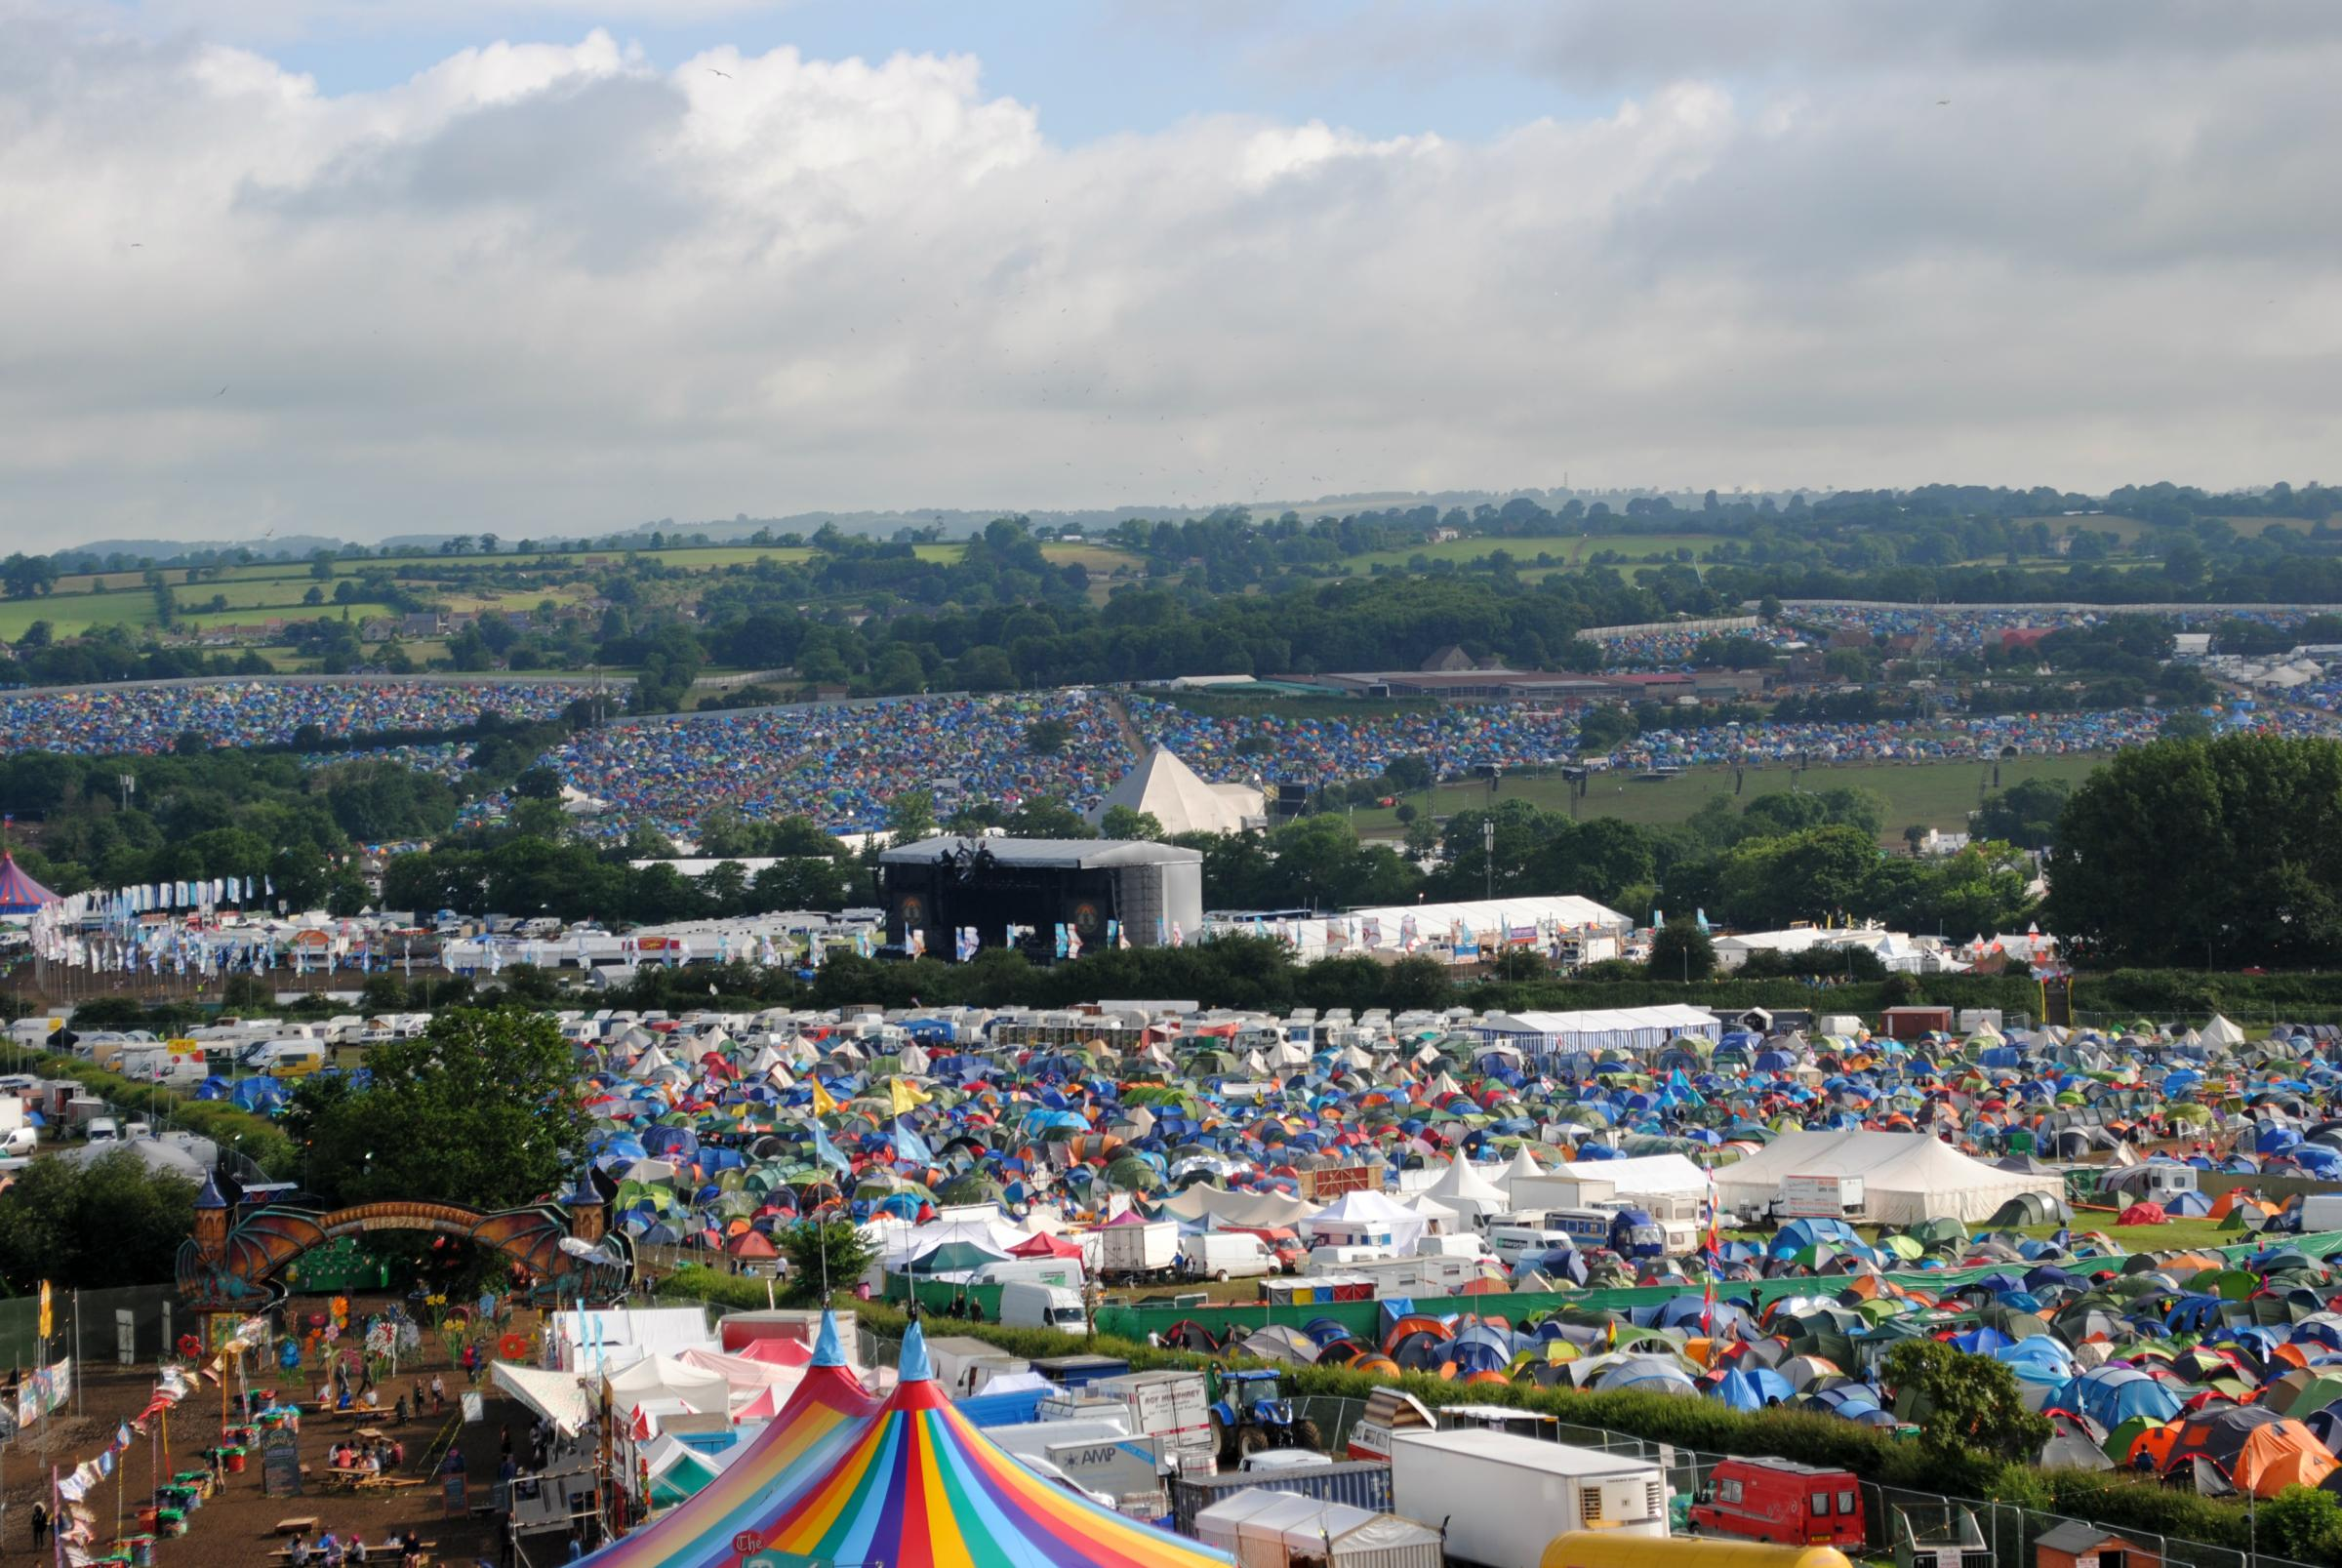 Map images show how big Glastonbury Festival is compared to Taunton